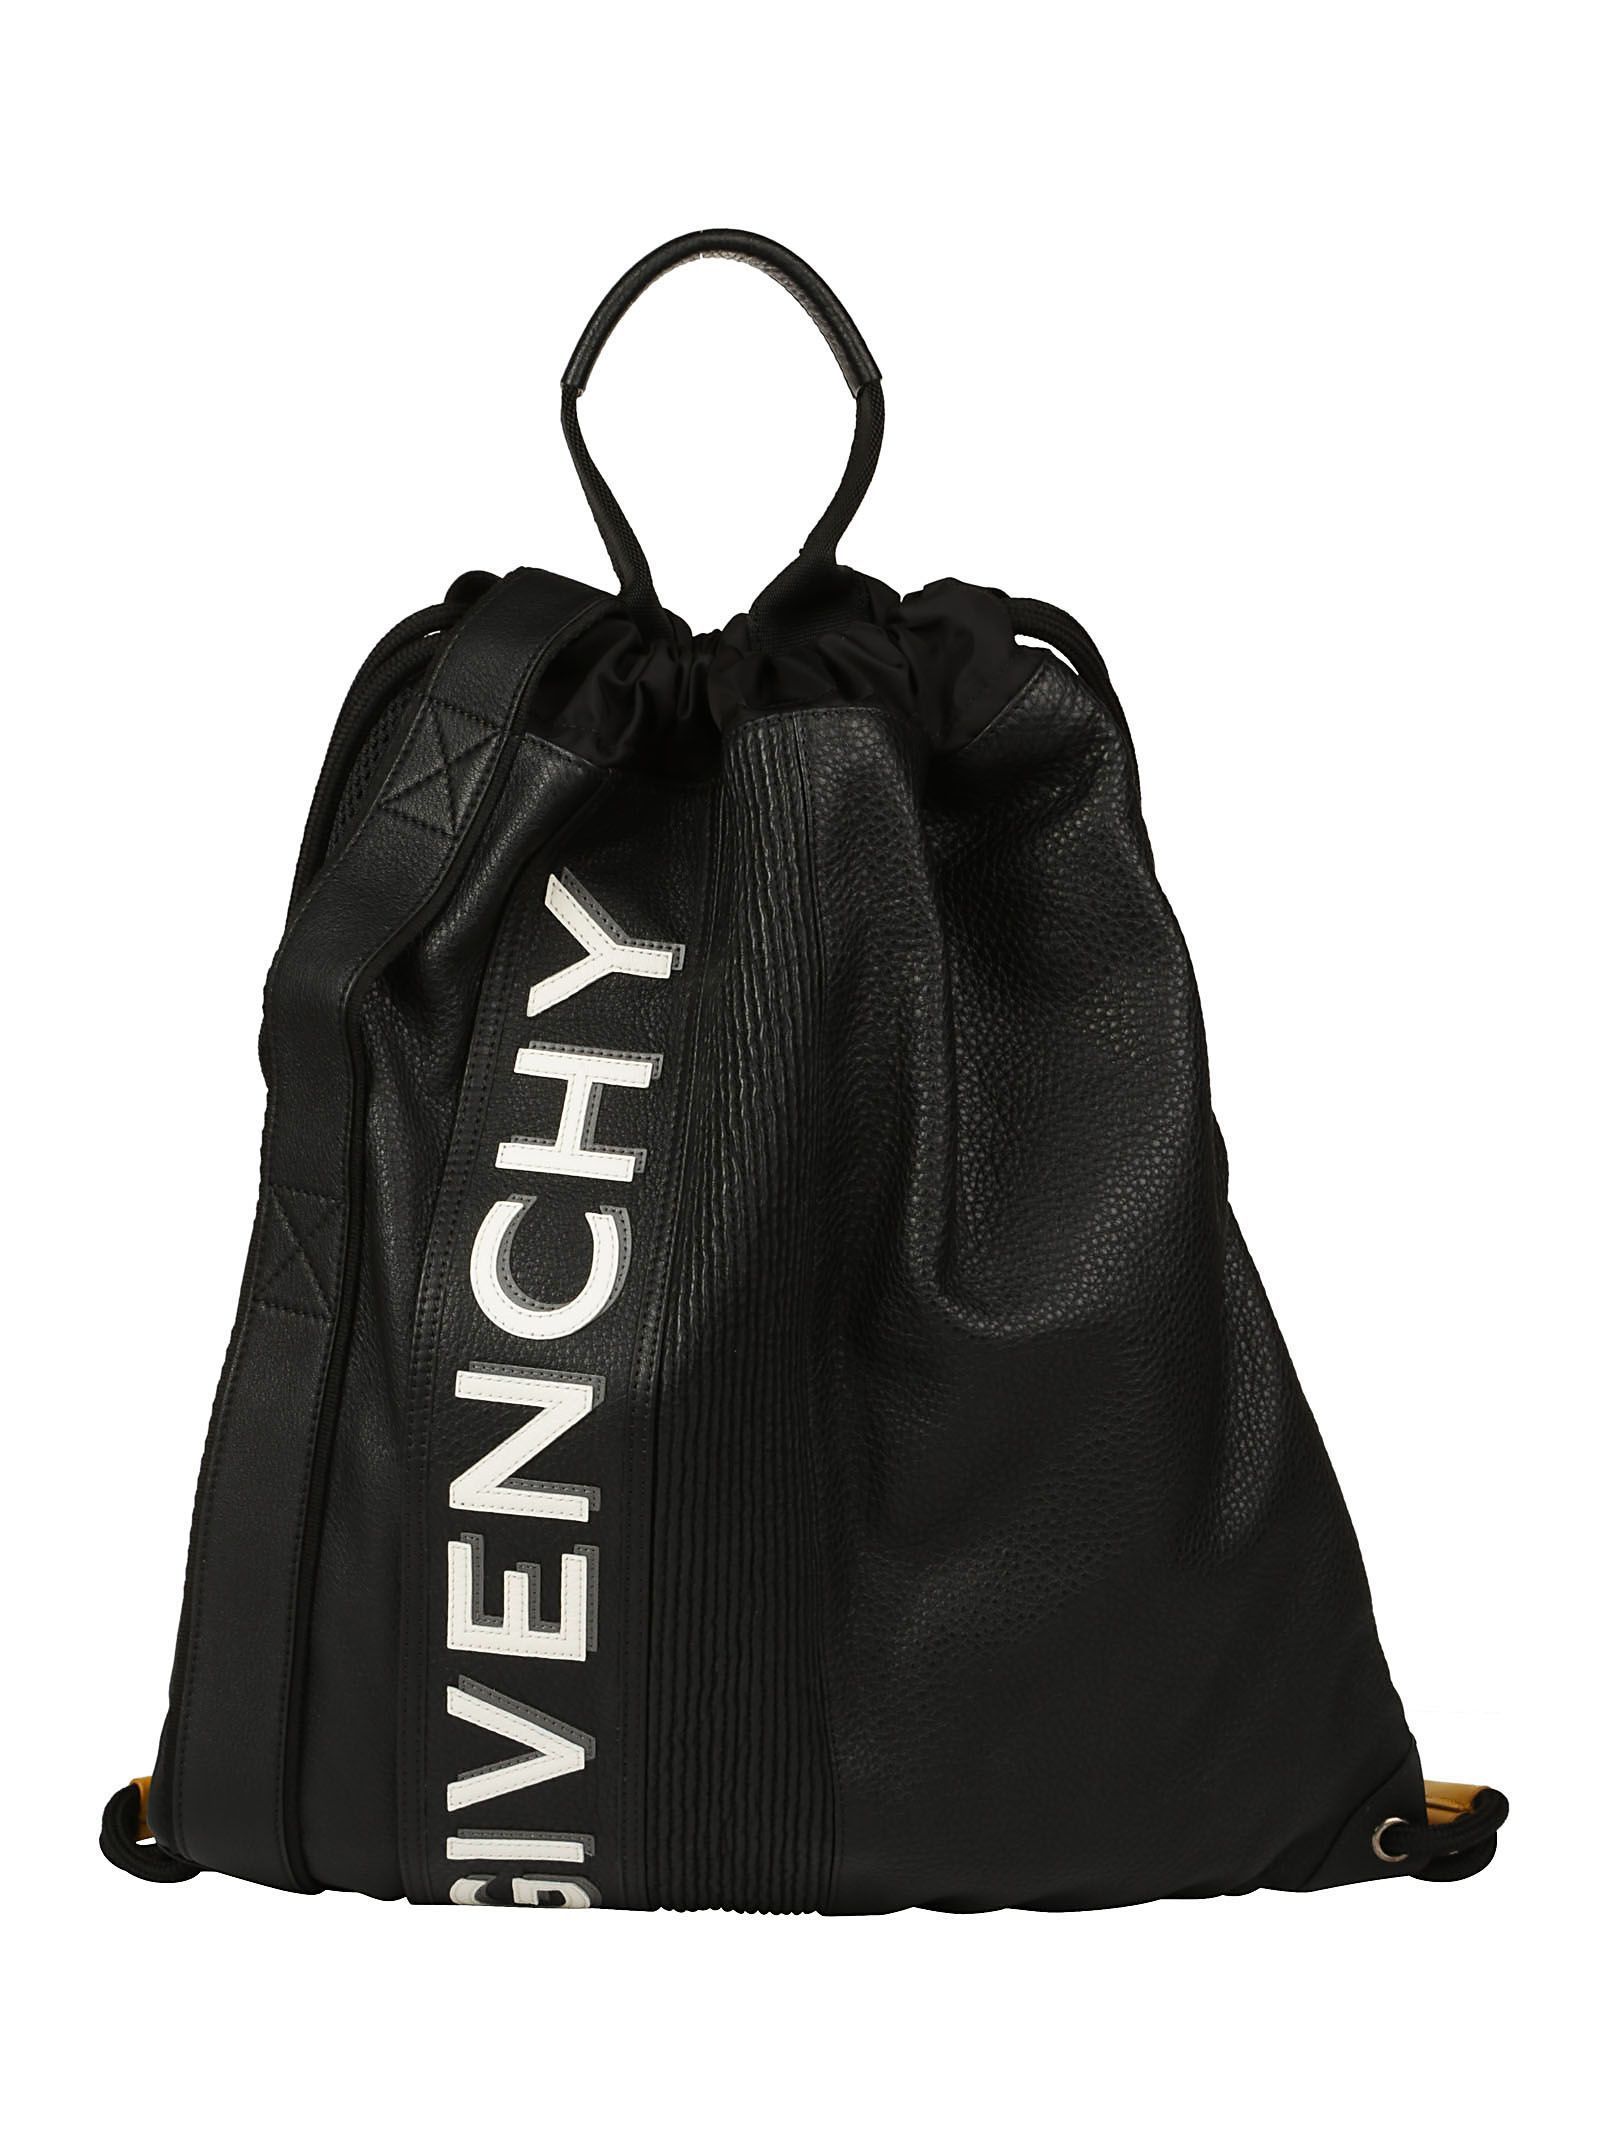 9945d3d388 GIVENCHY BACKPACK.  givenchy  bags  leather  backpacks